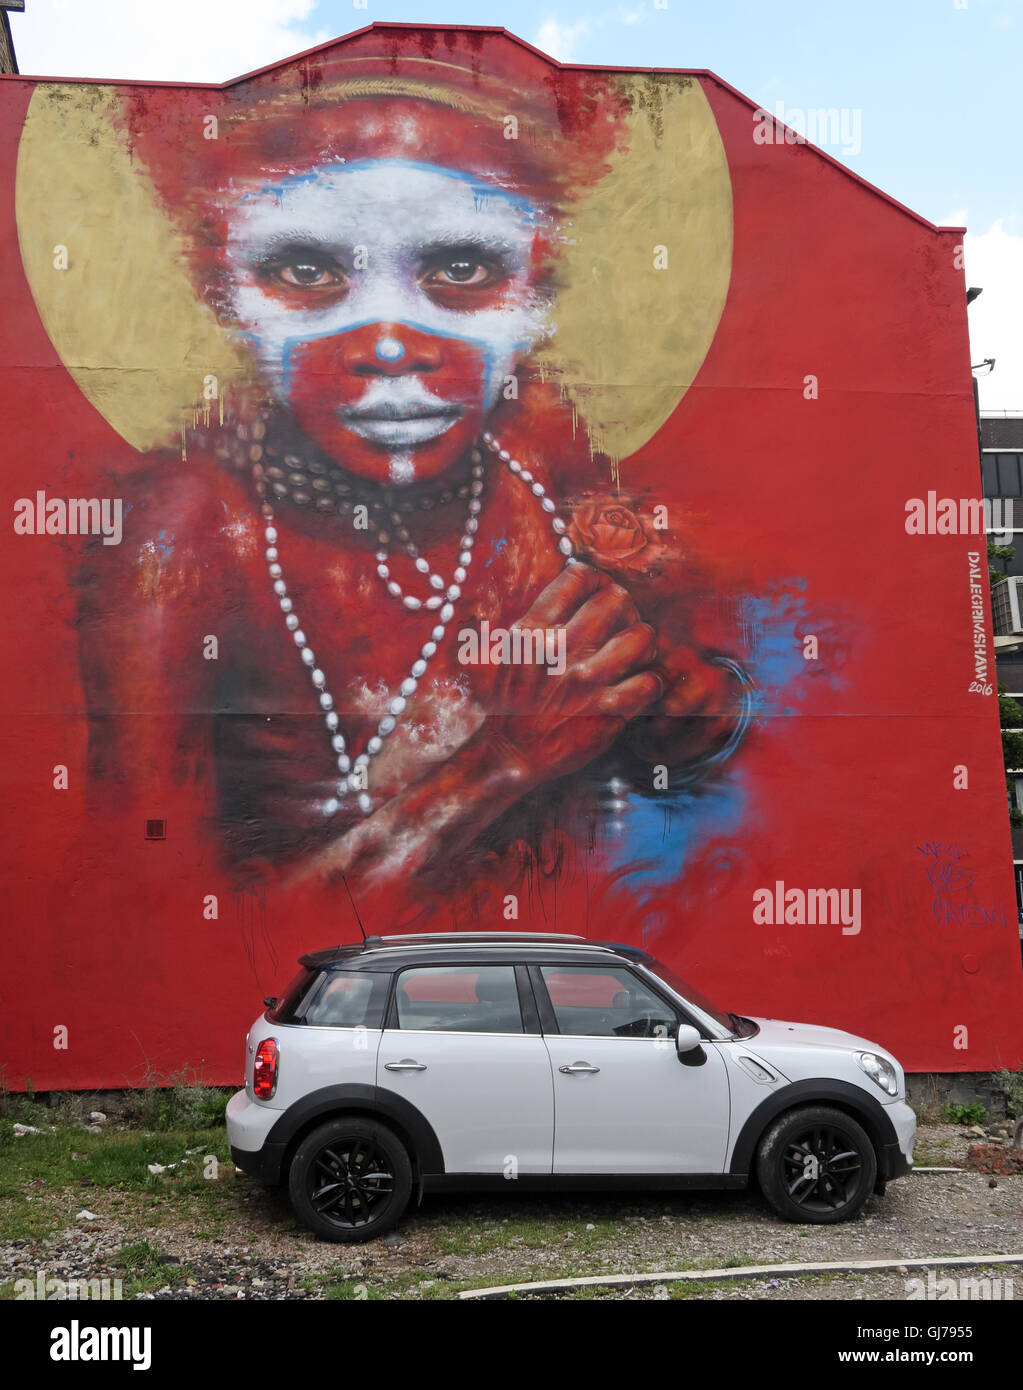 Aboriginal child in car park, Northern Quarter Artwork, NQ, Manchester, North West England, UK, M1 1JR - Stock Image